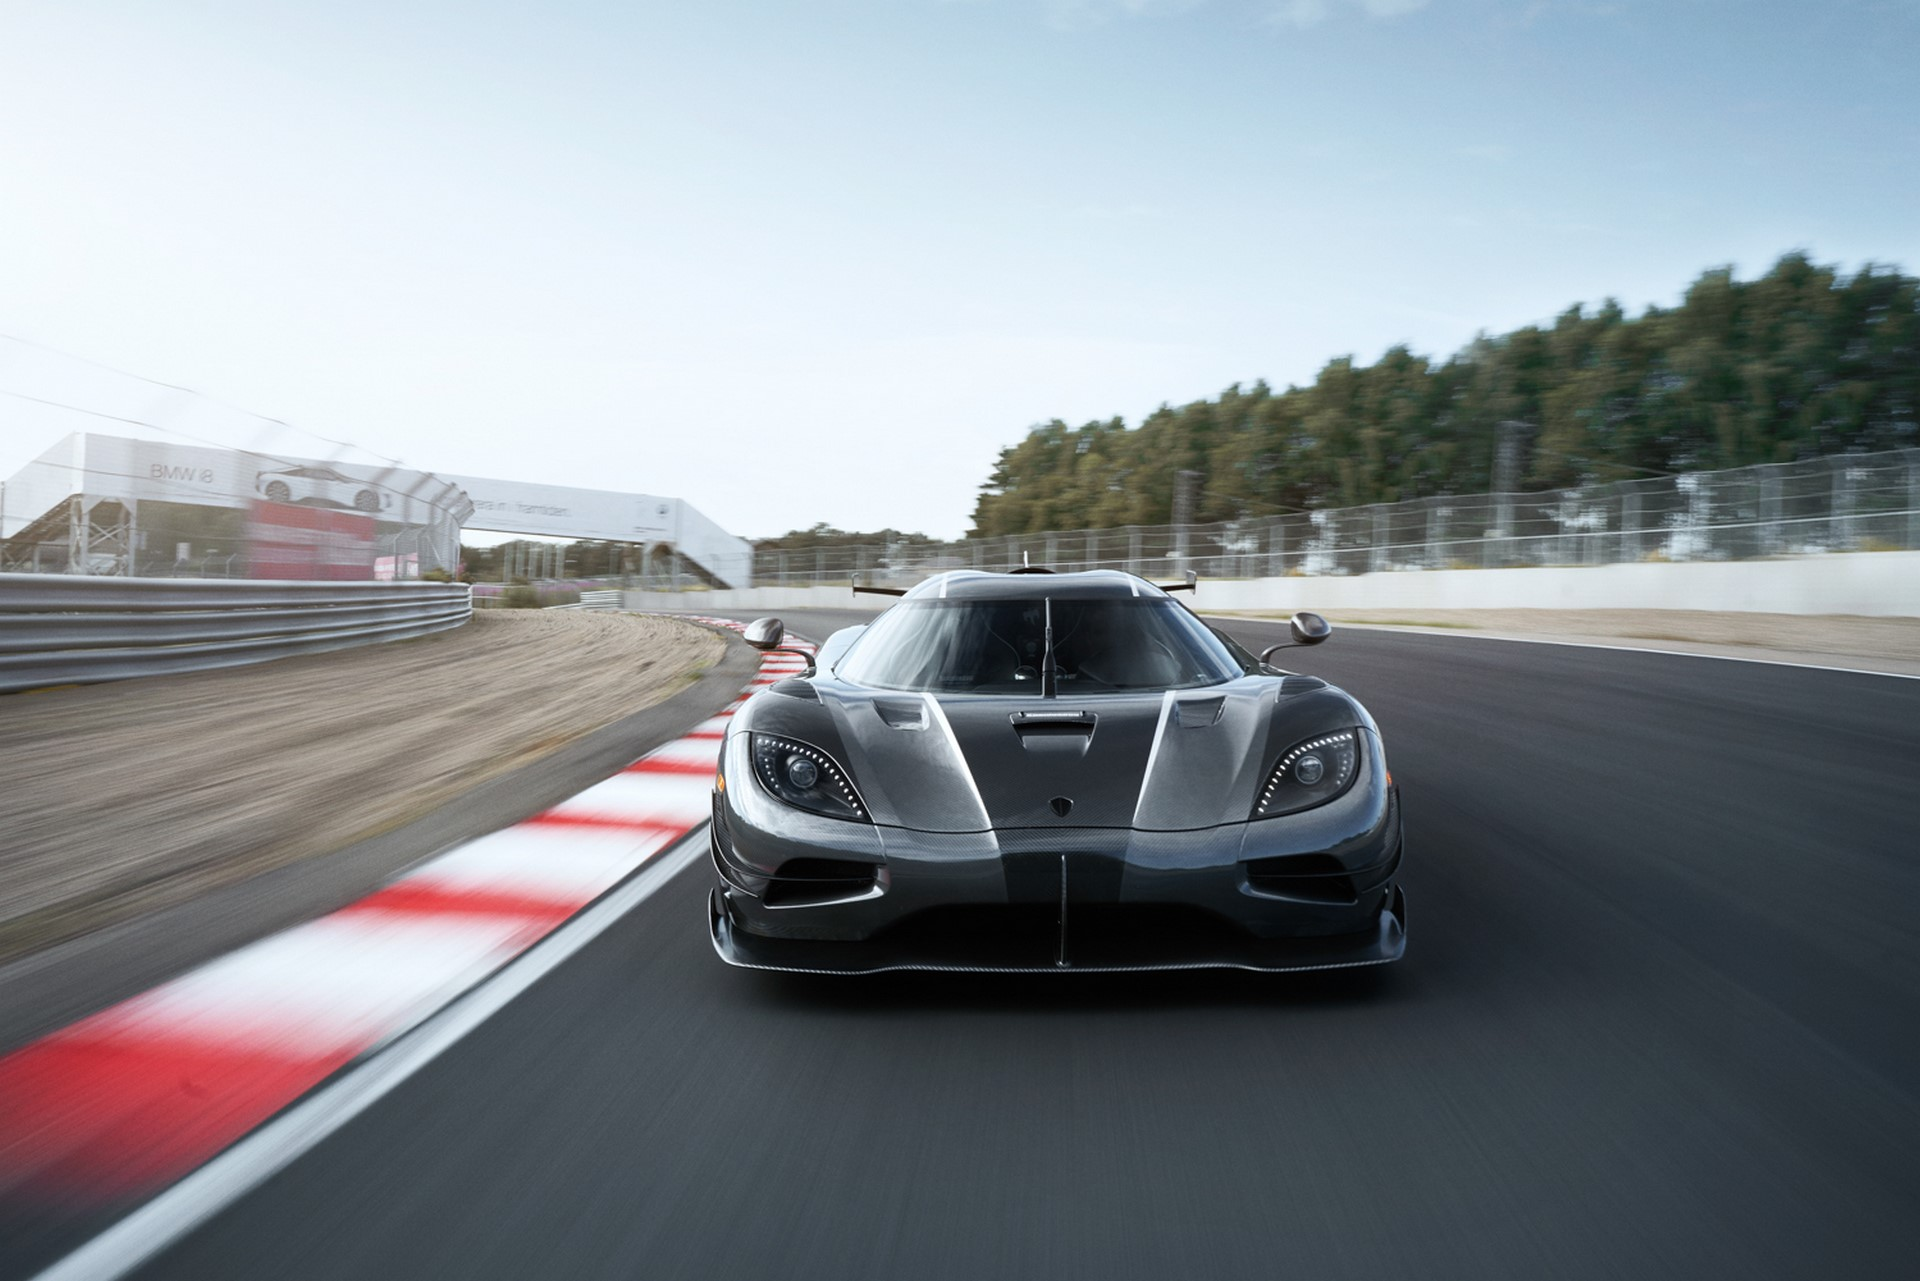 Koenigsegg Agera FE. Έτοιμες οι δύο τελευταίες Agera ...